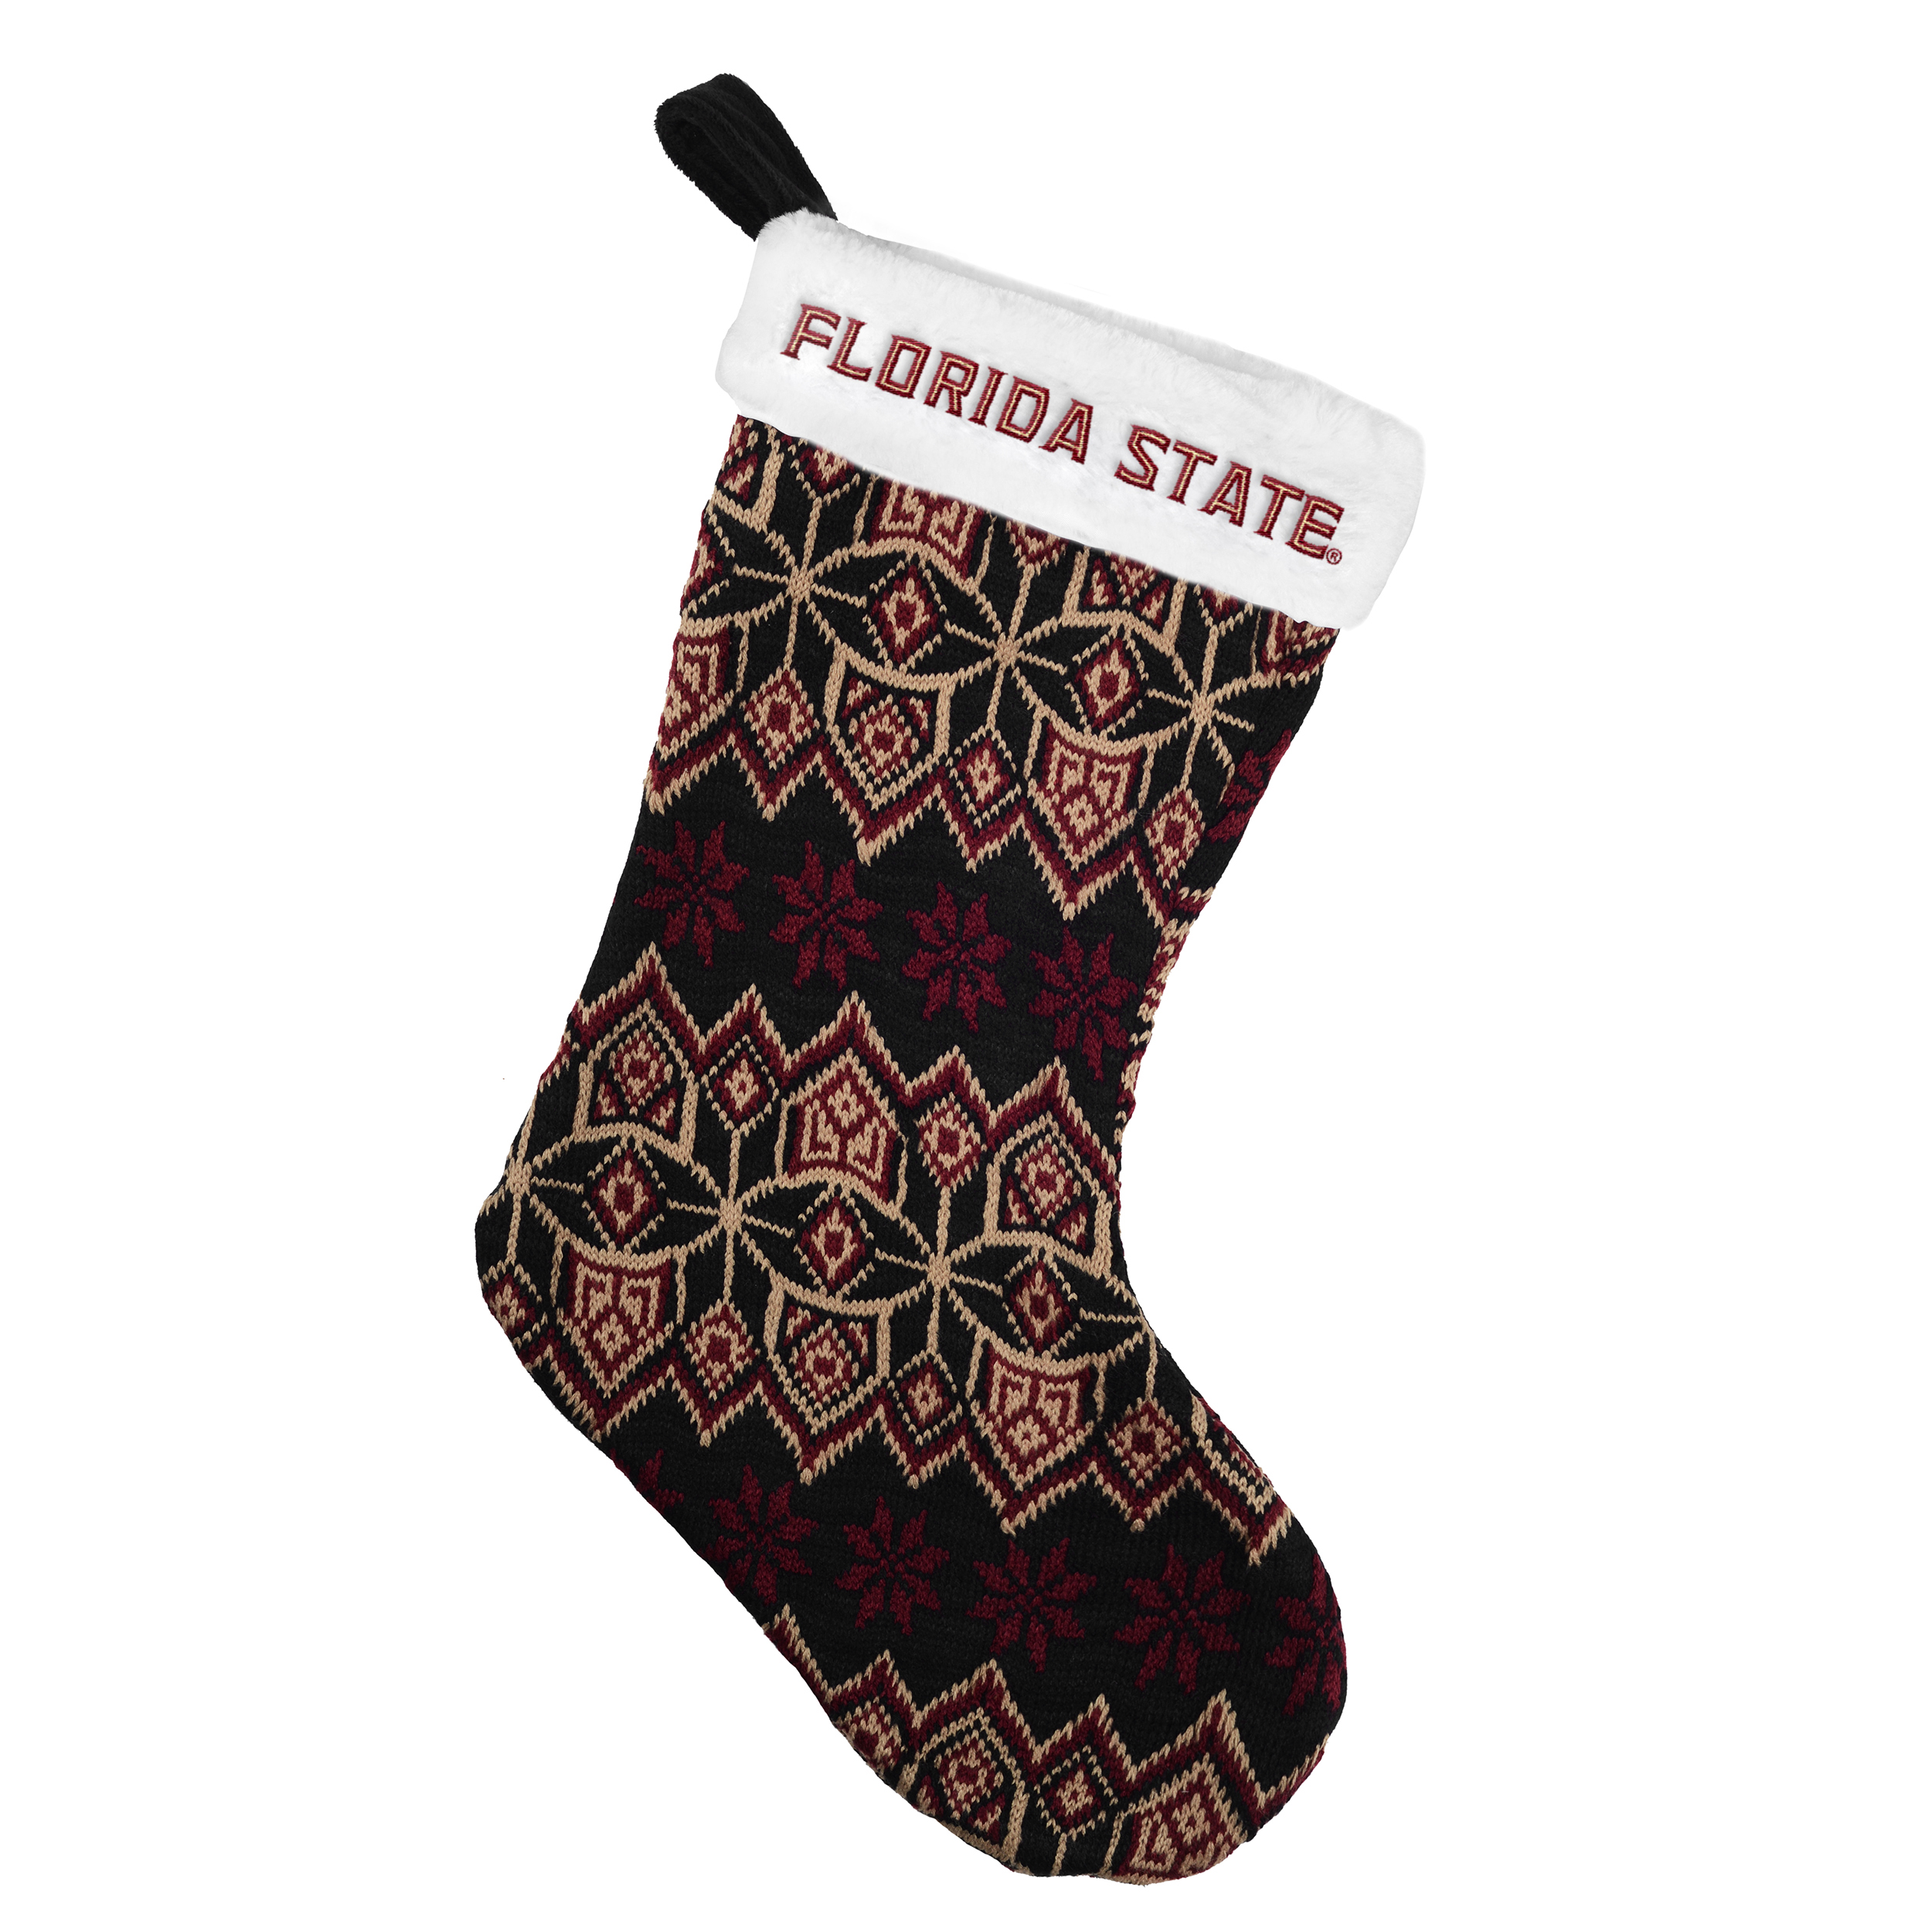 Florida State 2015 Knit Stocking